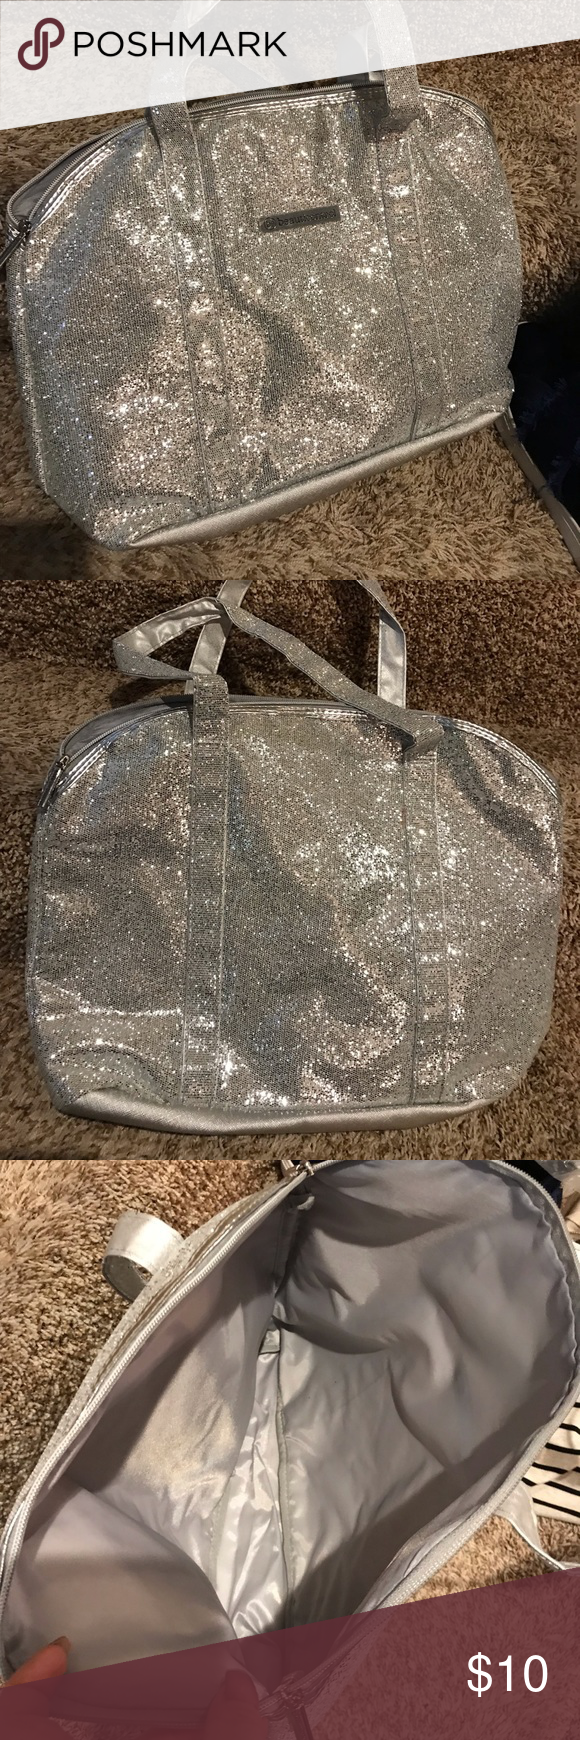 "BeautiControl sparkly tote bag Measurements:  17""x12""x5"", 10"" drop handle  Color: silver with sparkles, cross hatch pattern on bottom  New in original packages, no tags  Zipper top, single open pocket beauticontrol Bags Totes #zippertop"